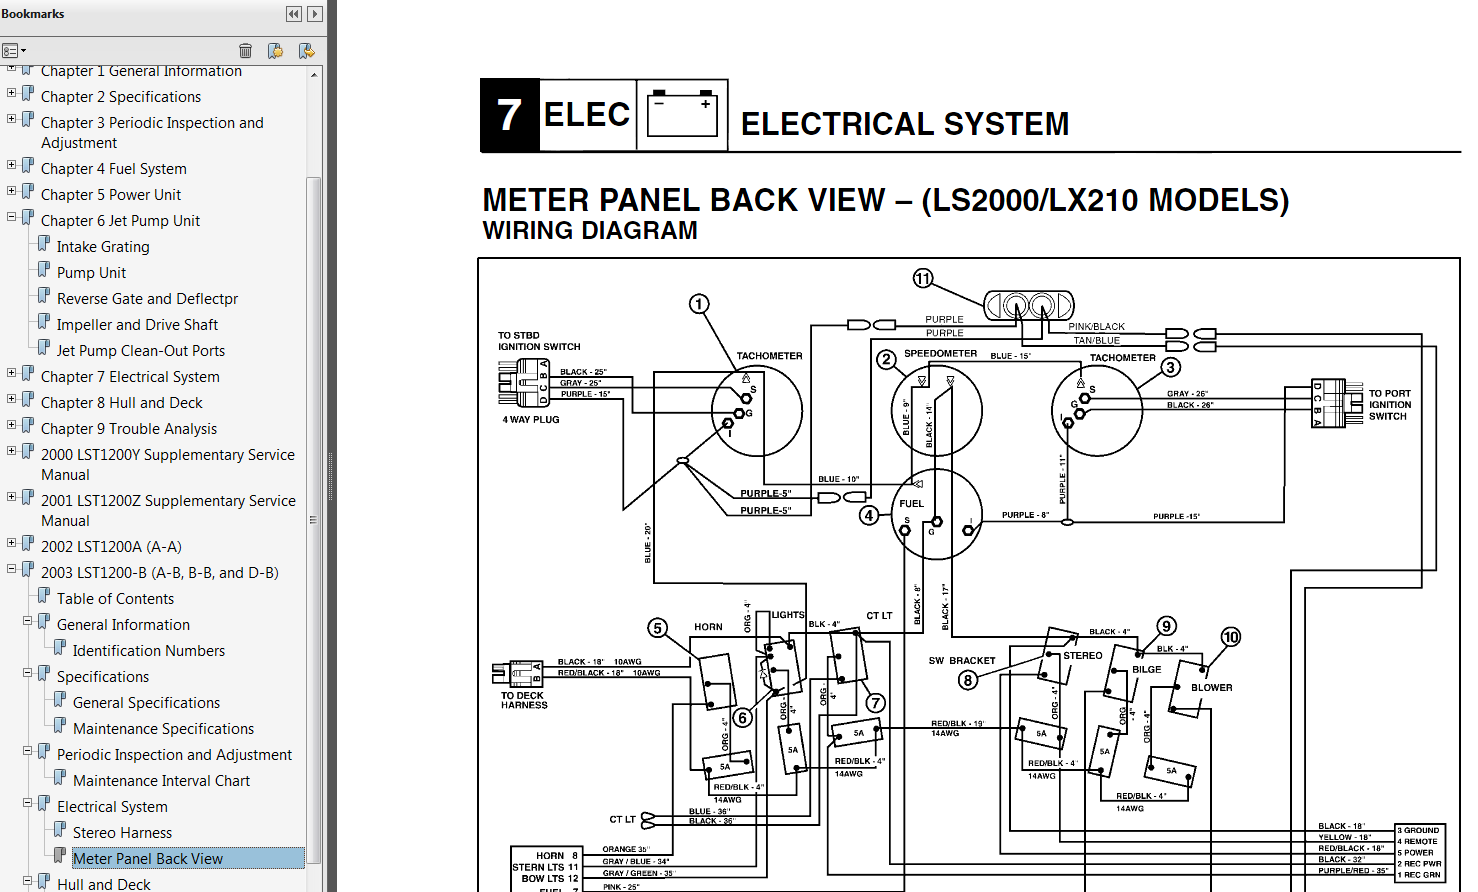 Polaris Sportsman 500 Fuse Box Wiring Library 10 Awg Diagram 1999 2005 Yamaha Lx210 Ar210 Boat Service Manual 570 Location